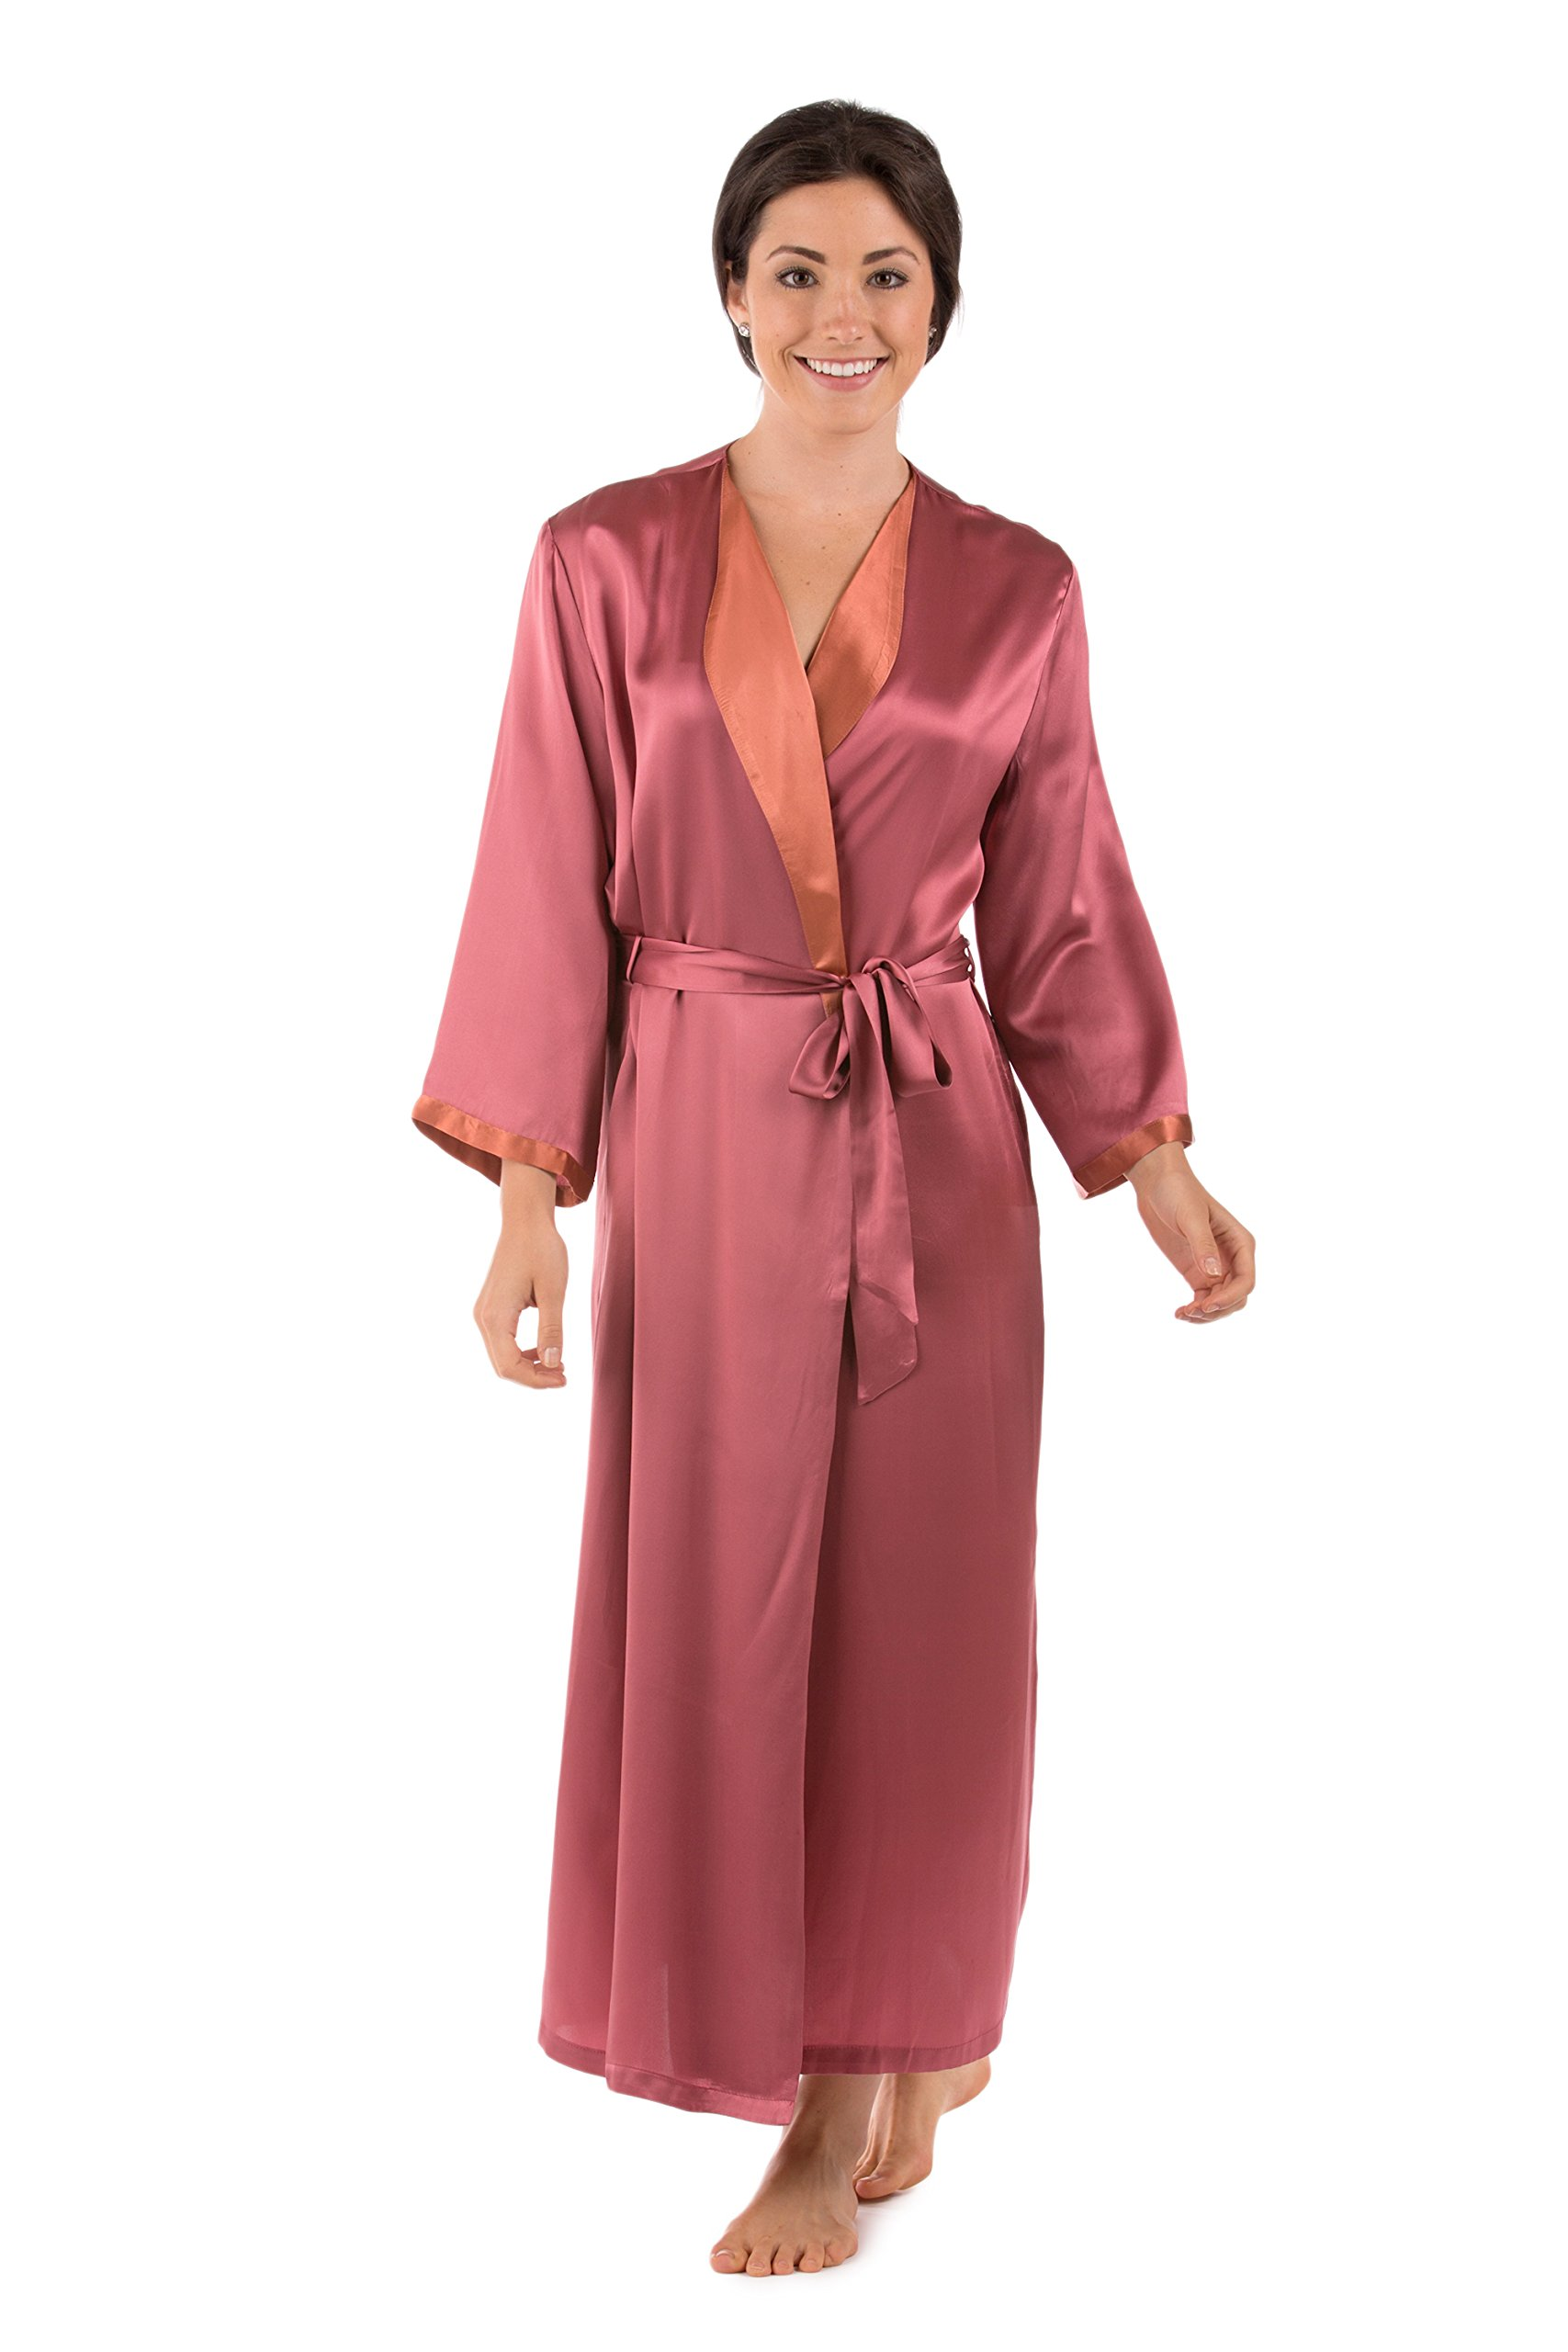 TexereSilk Women's Luxury Long Silk Bathrobe (Mulberry, Small/Medium) Mother's Day Presents for Her WS0102-MUL-SM